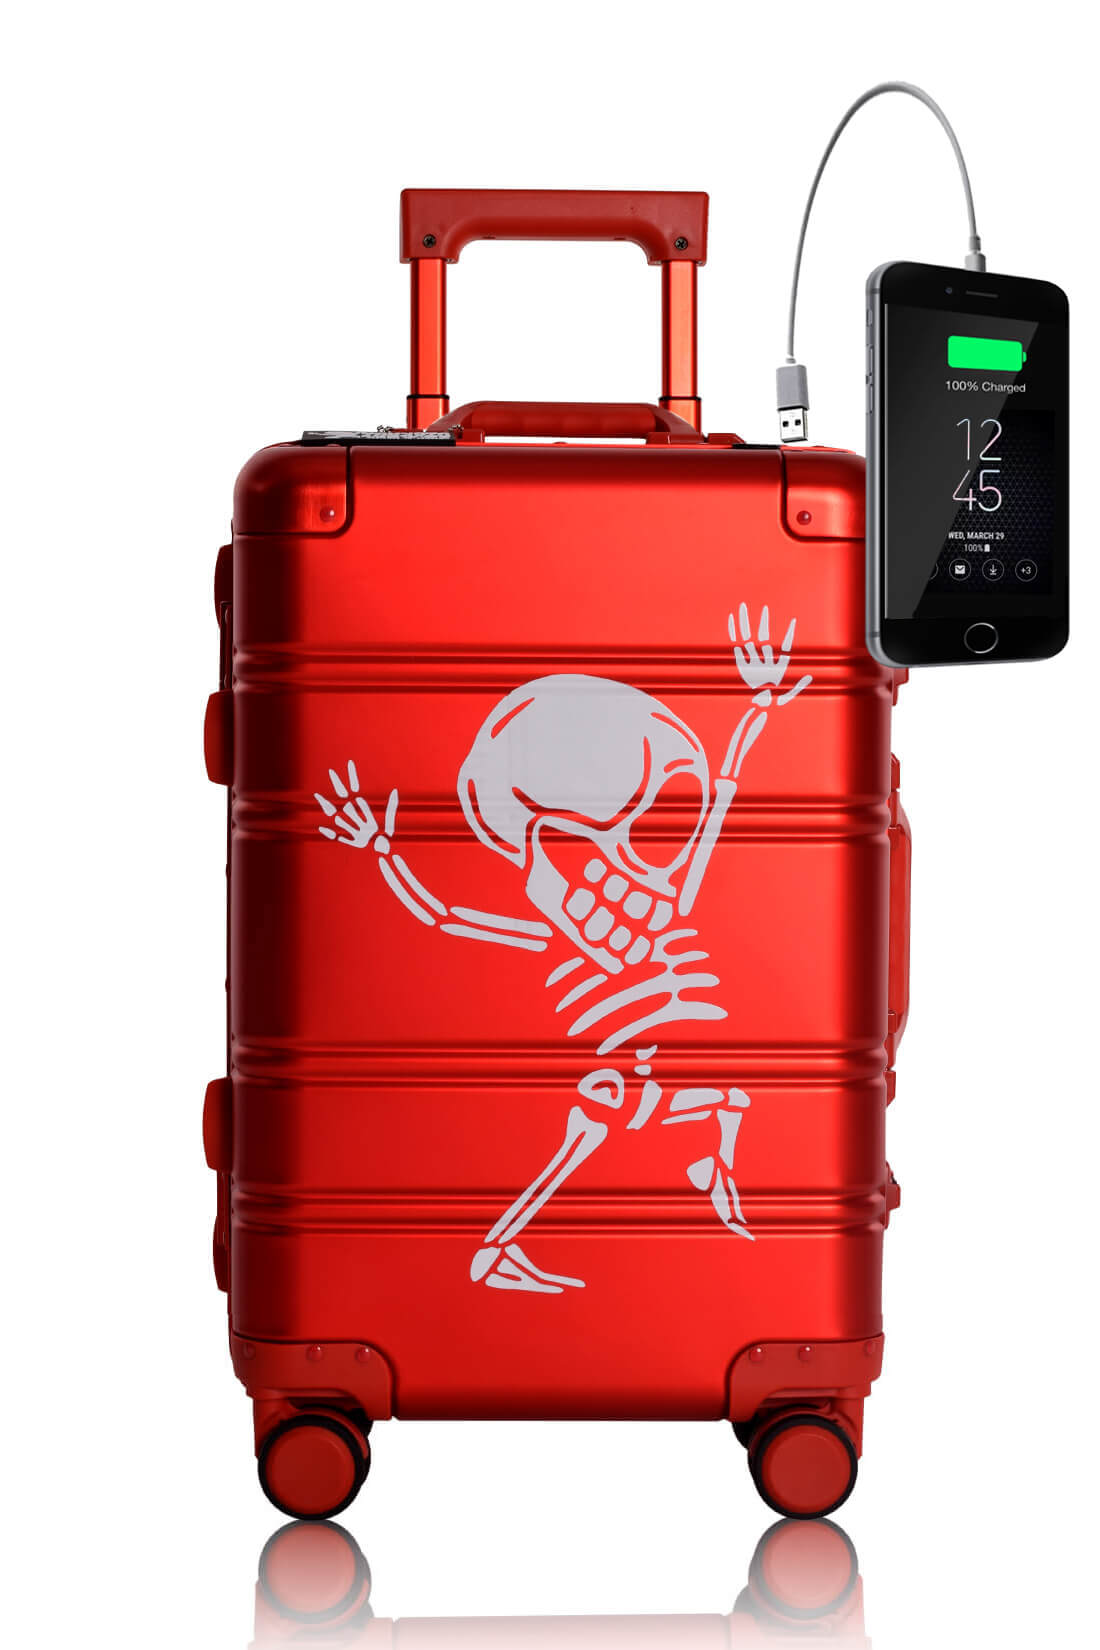 Full Aluminum Suitcase Cabin Size Carry-on Luggage Trolley RED SKULL